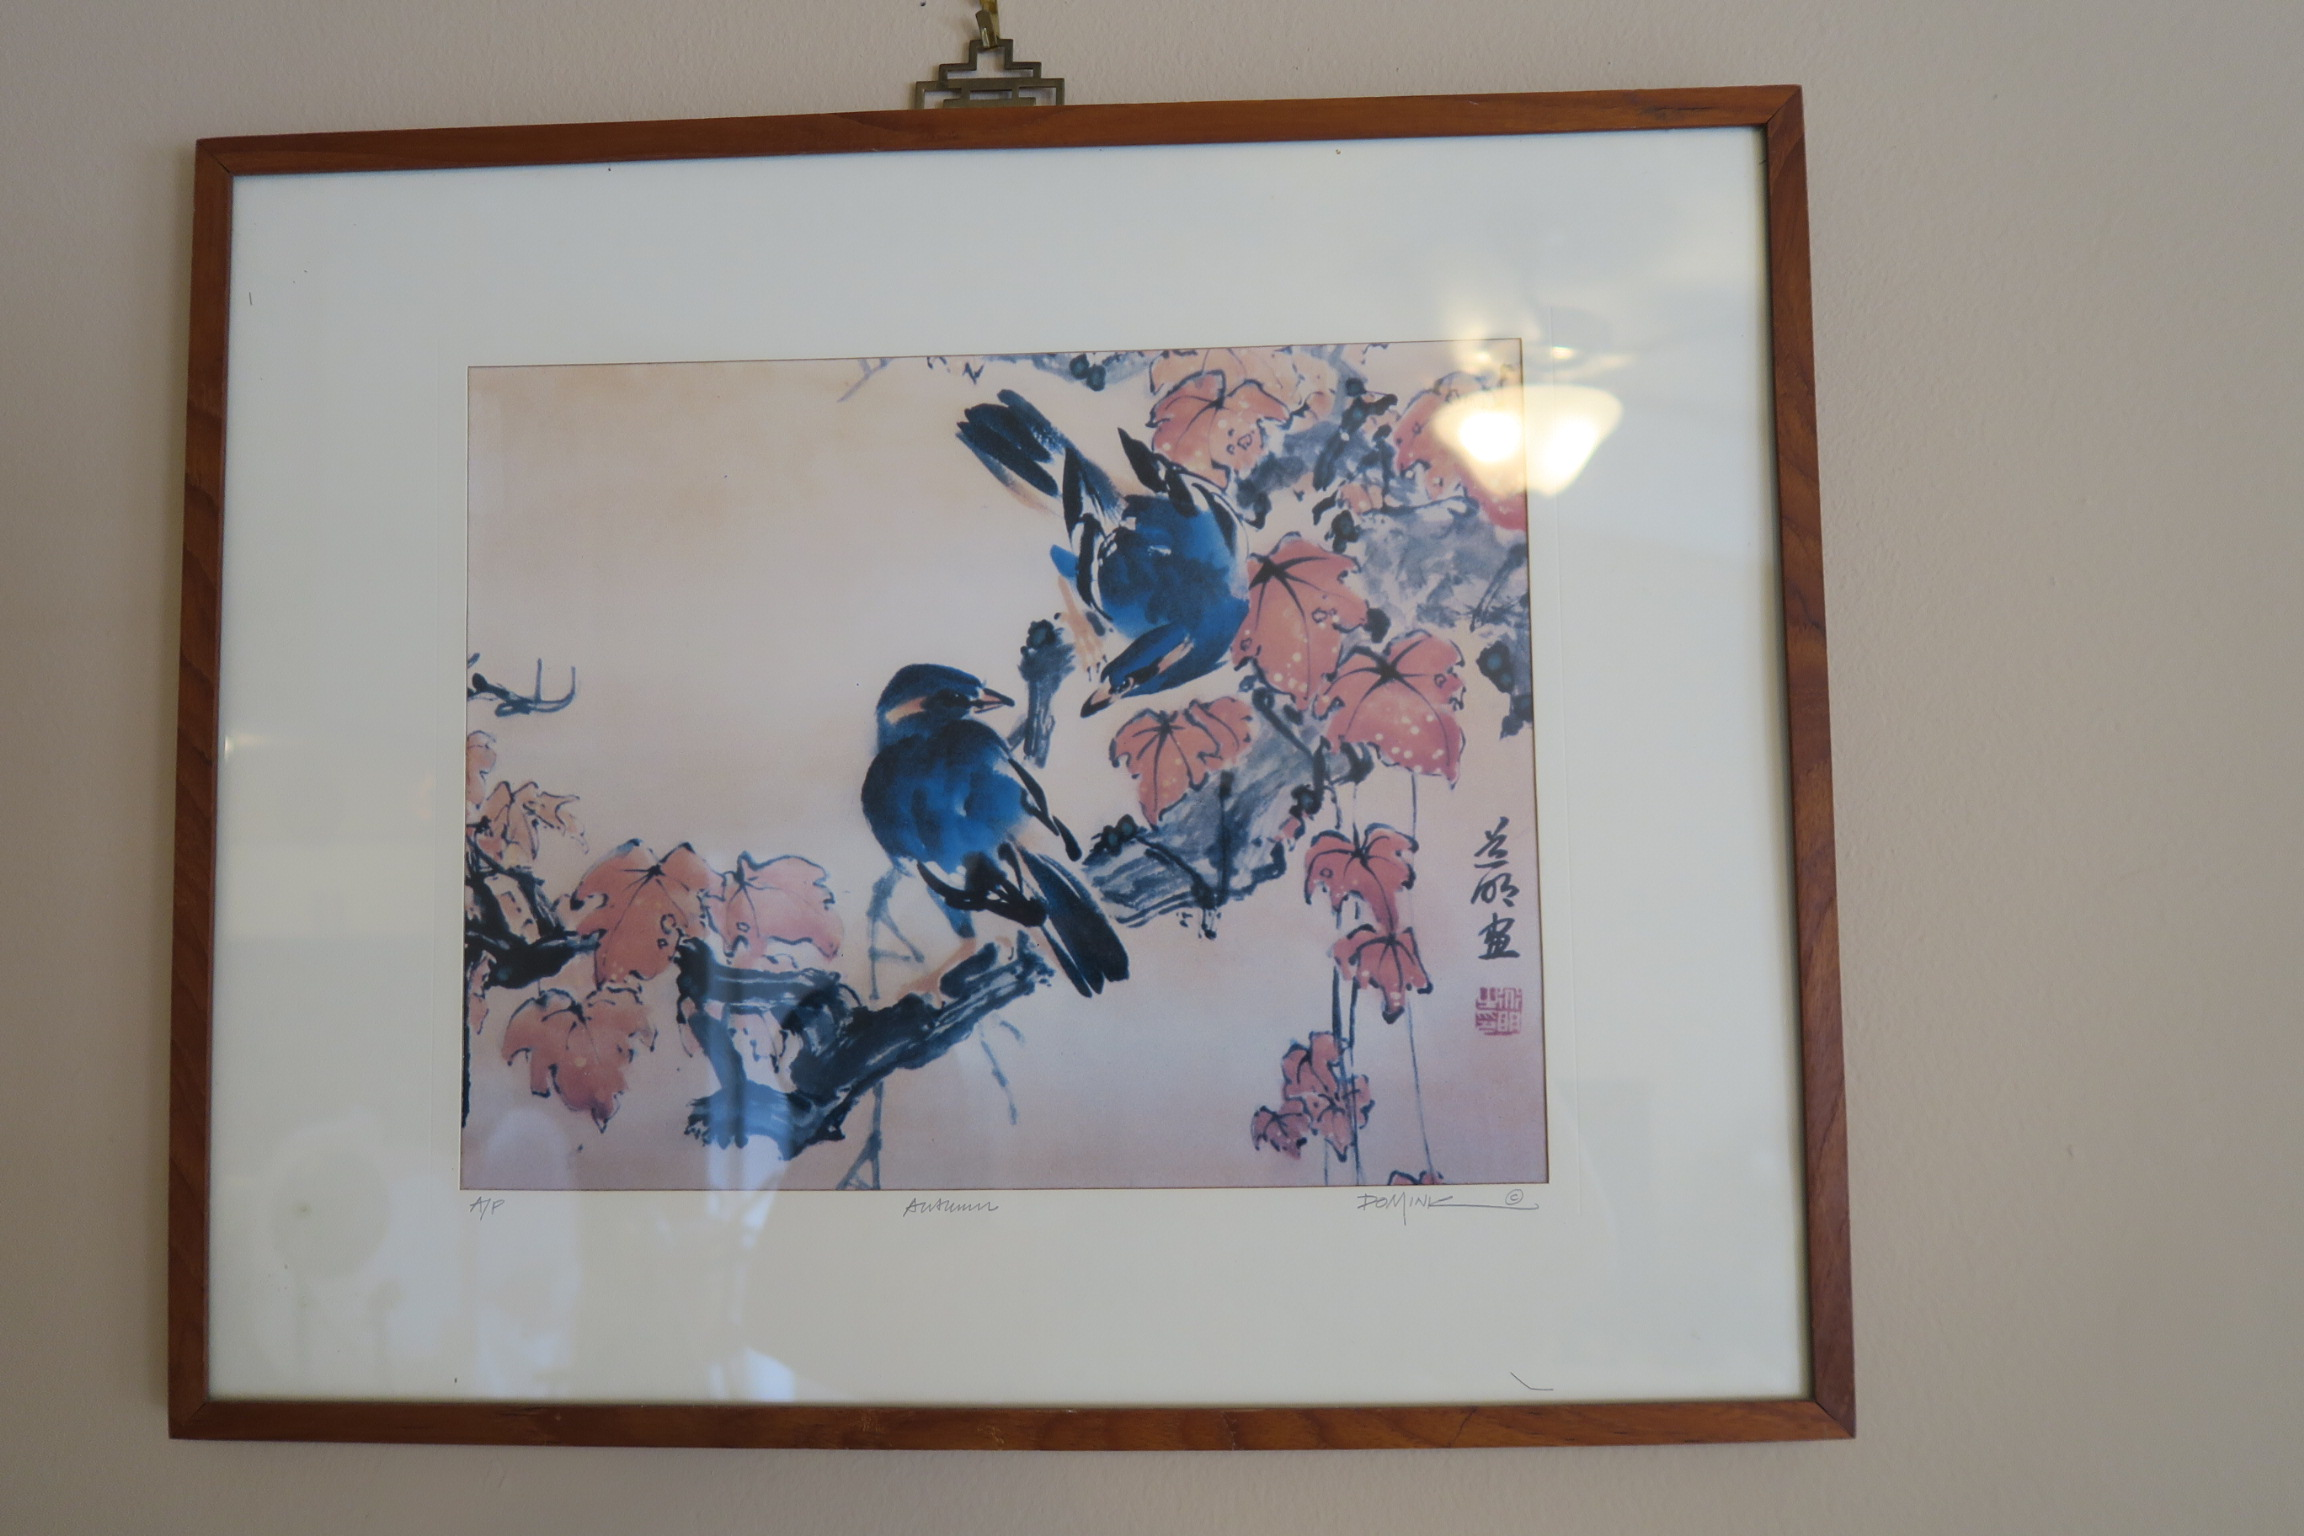 Decorating with Thrift Store Artwork